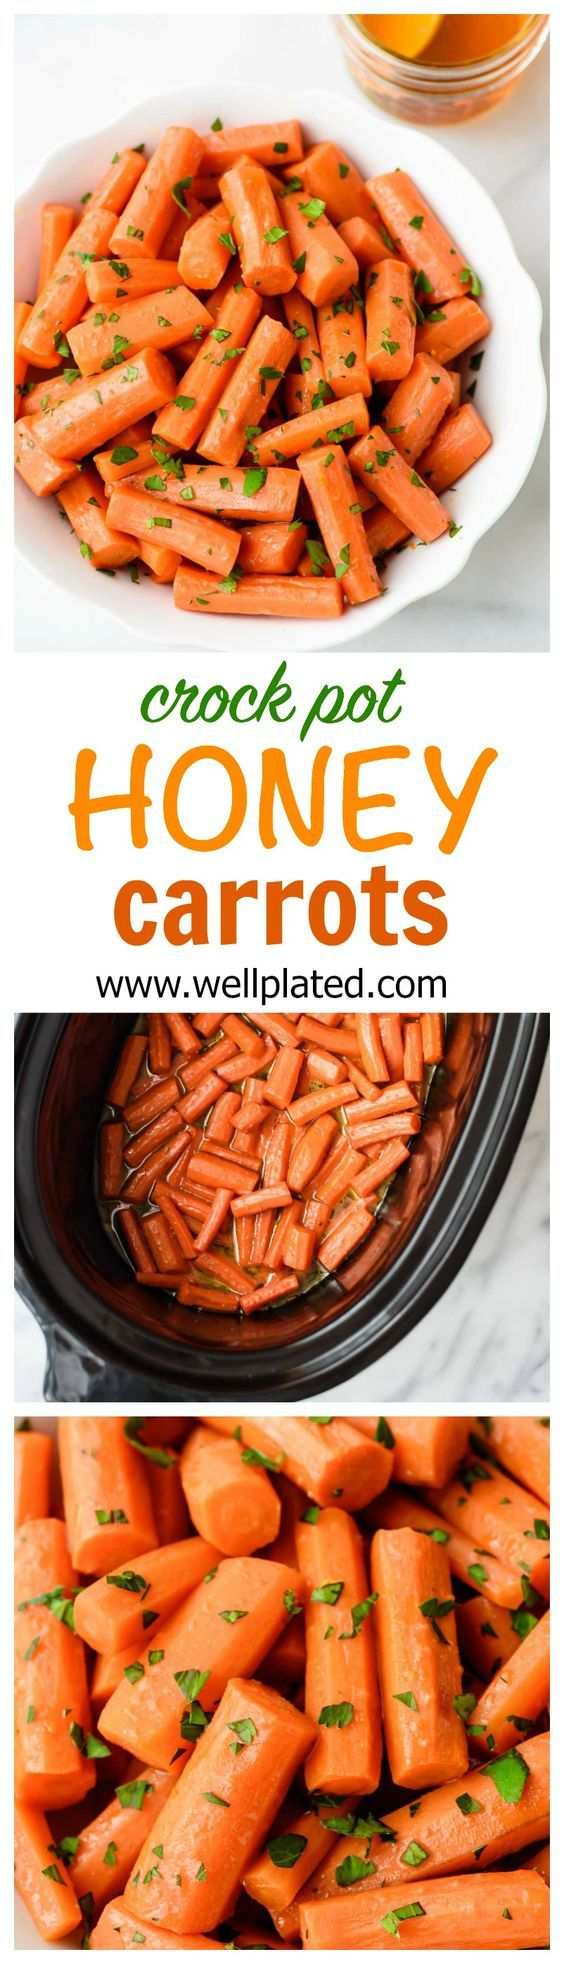 Finished with orange zest and sweet honey, these Crock Pot Glazed Carrots are the perfect side dish to any meal. Pairs well with a variety of entrees and kids love them too! www.wellplated.com | @wellplated #slowcooker #crockpot